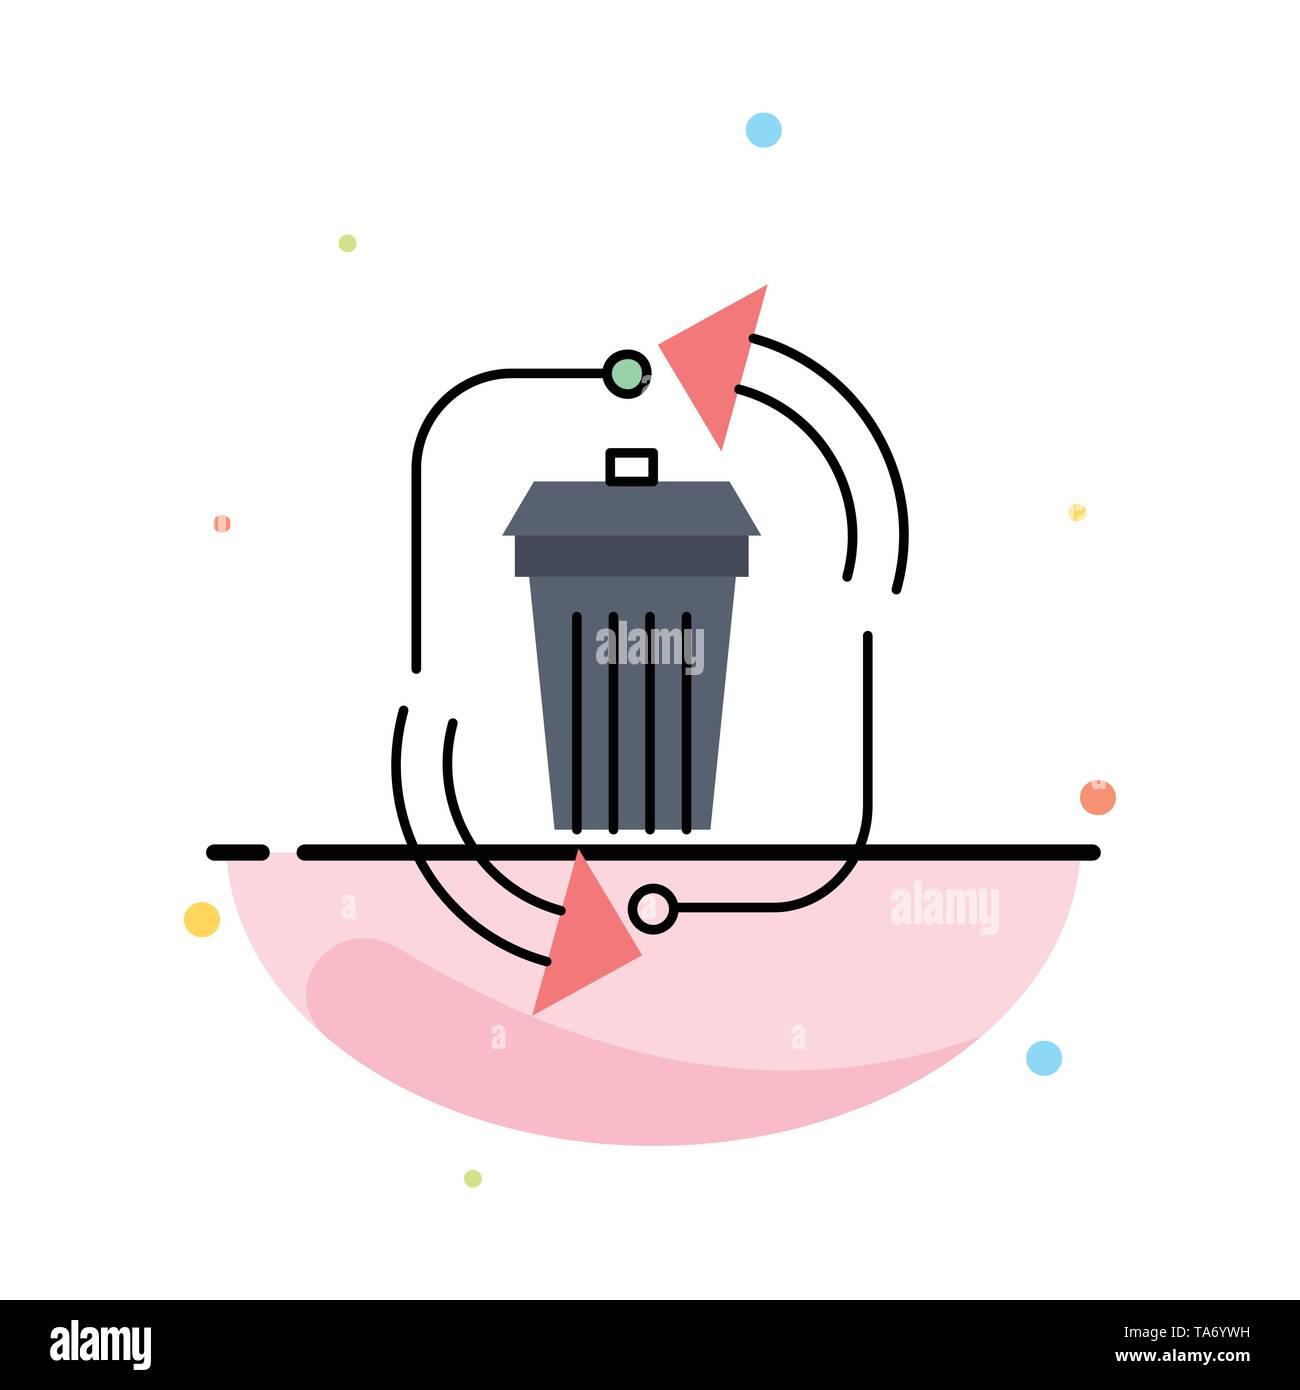 waste, disposal, garbage, management, recycle Flat Color Icon Vector - Stock Image